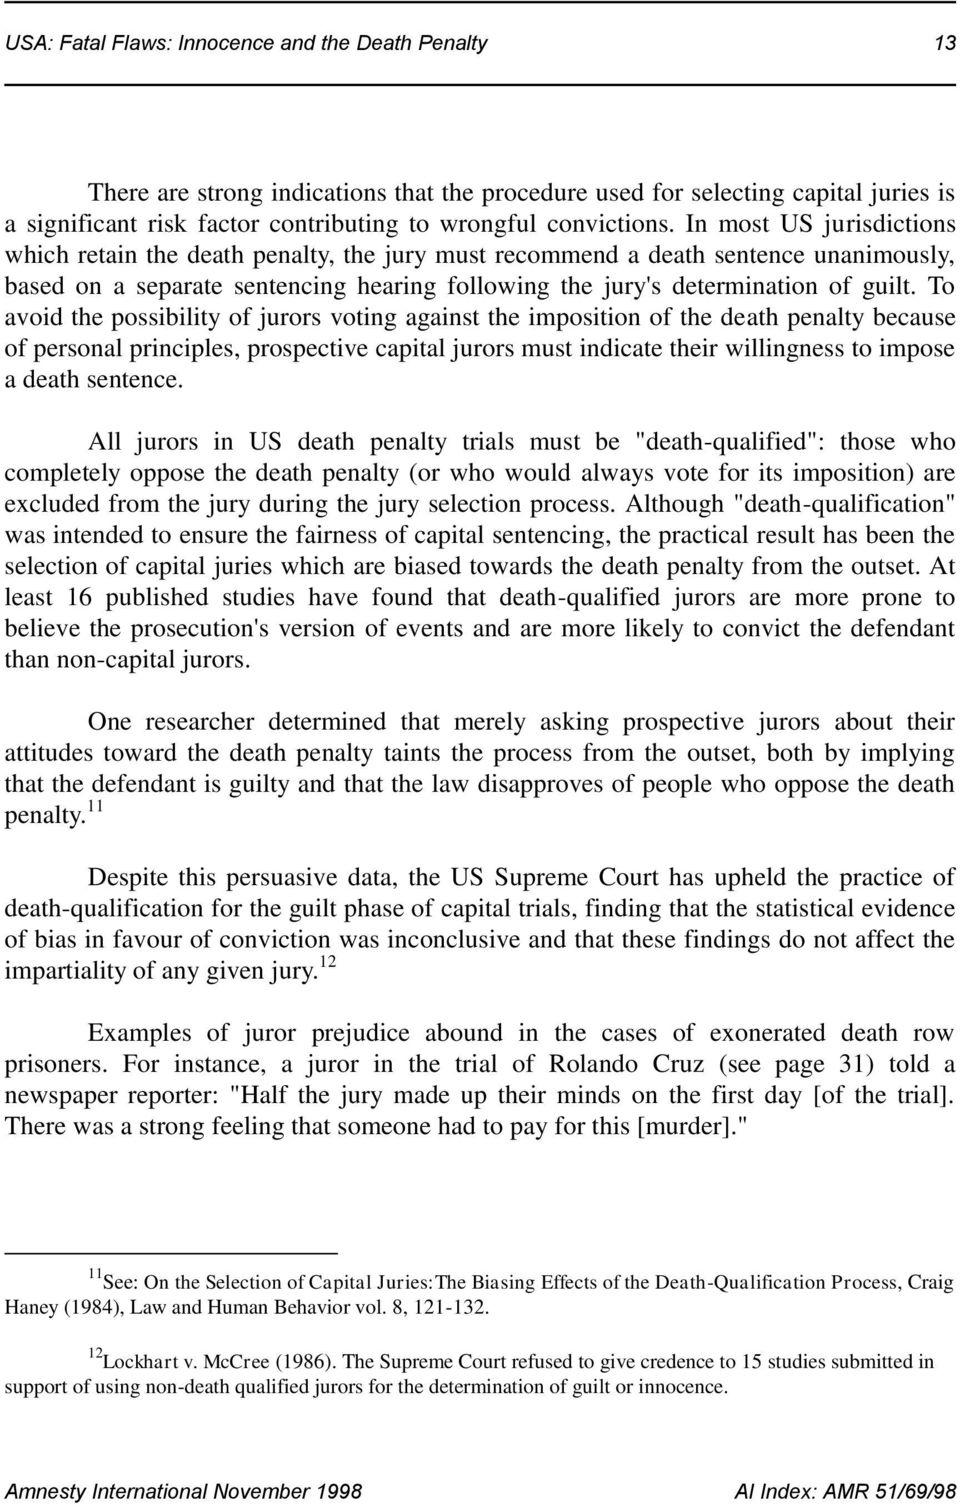 In most US jurisdictions which retain the death penalty, the jury must recommend a death sentence unanimously, based on a separate sentencing hearing following the jury's determination of guilt.